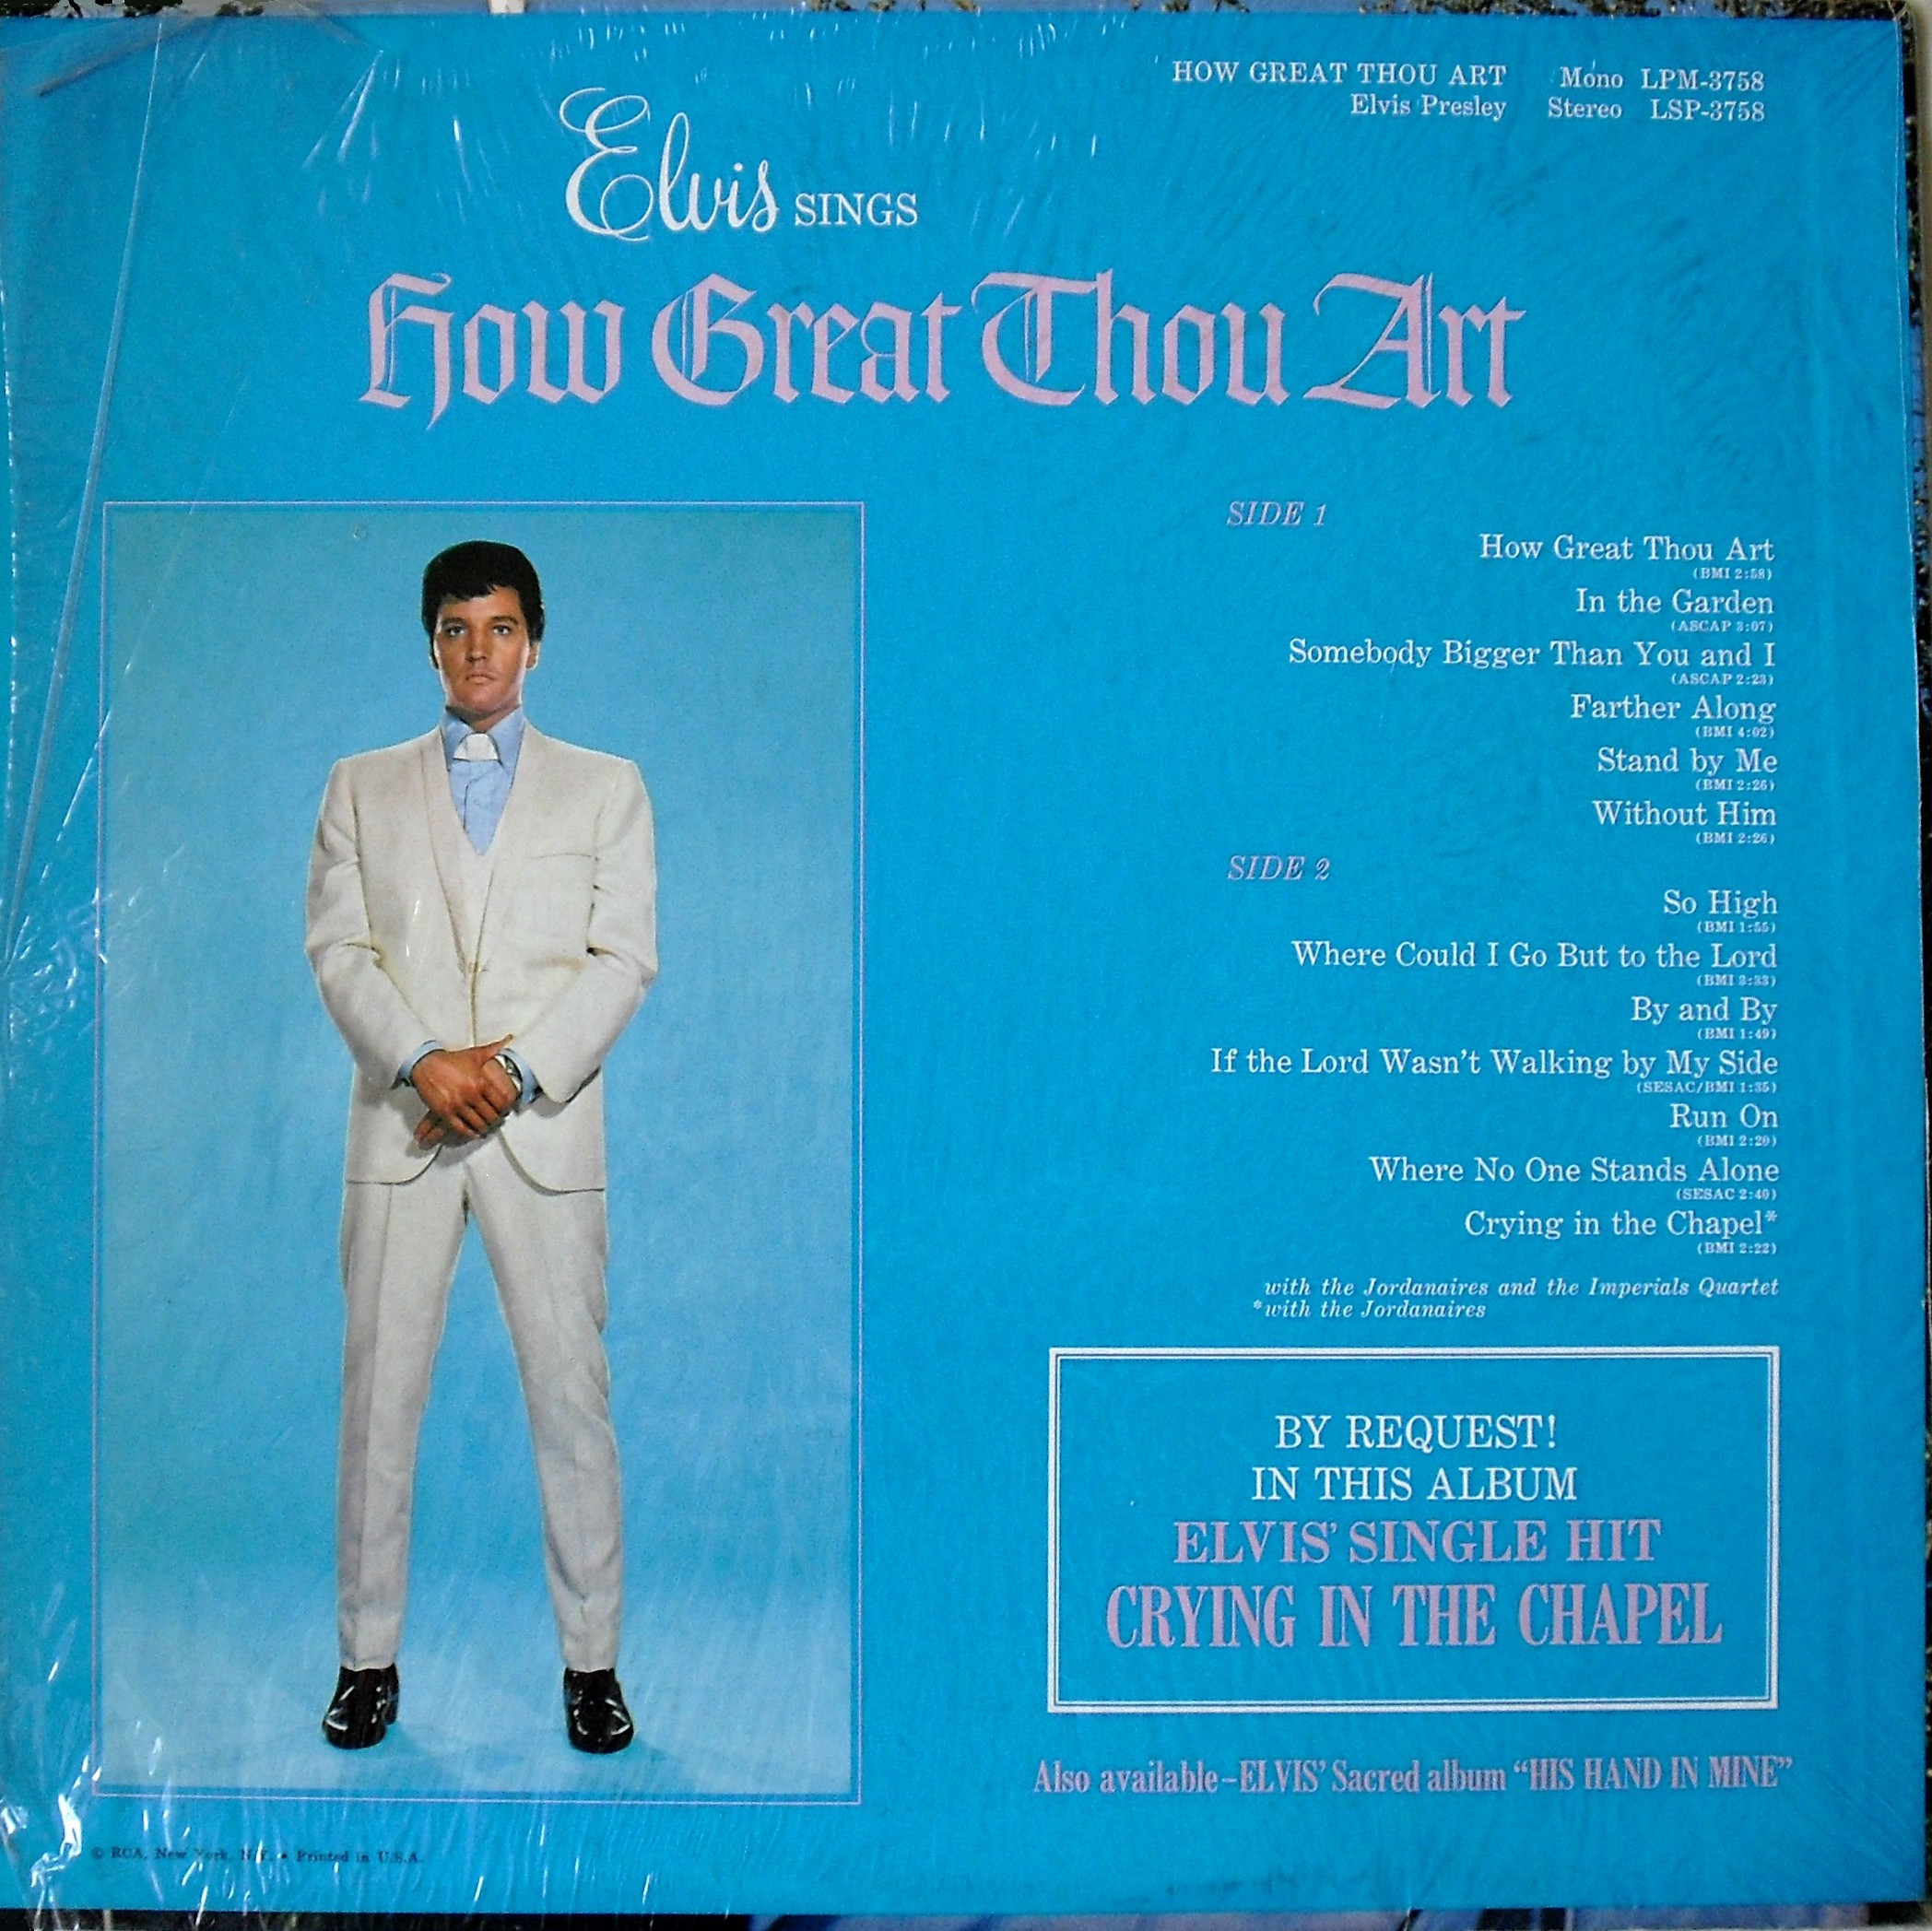 HOW GREAT THOU ART 02vdfqd